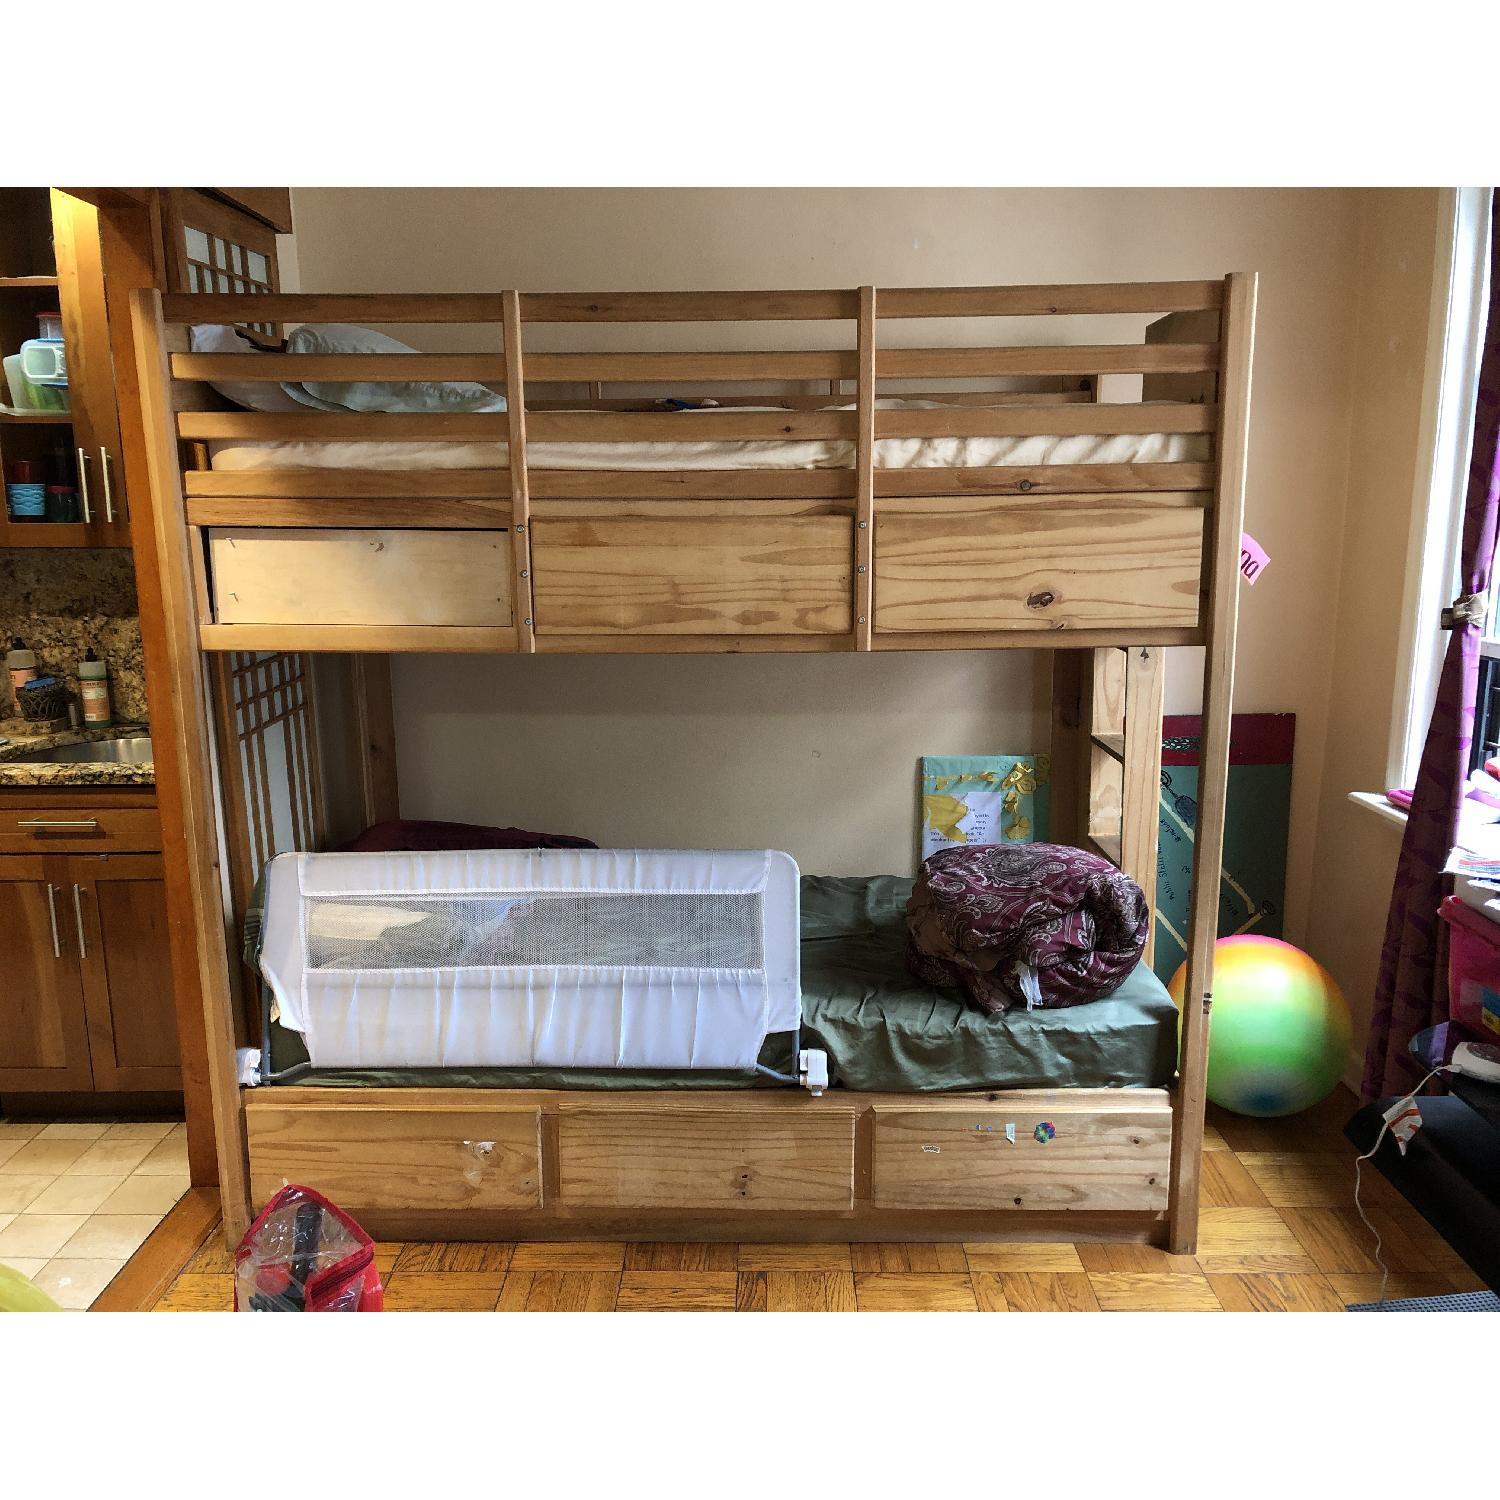 Gothic Cabinet Craft Twin Bunk Bed in Natural Pine Wood-0